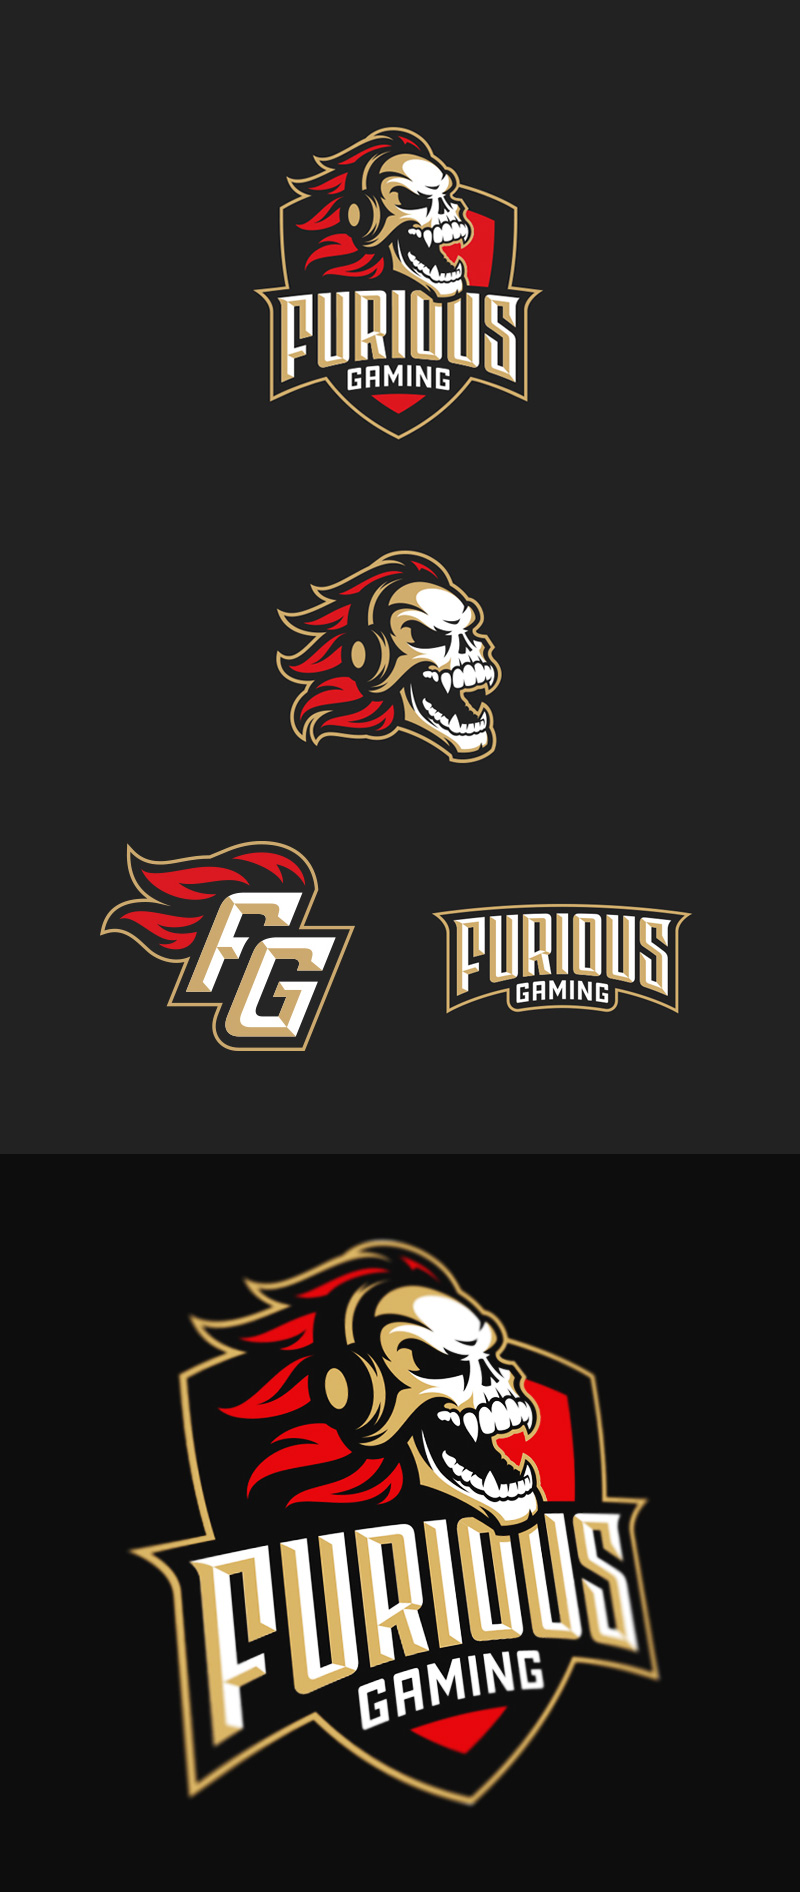 Furious Gaming eSport Team Logo Design